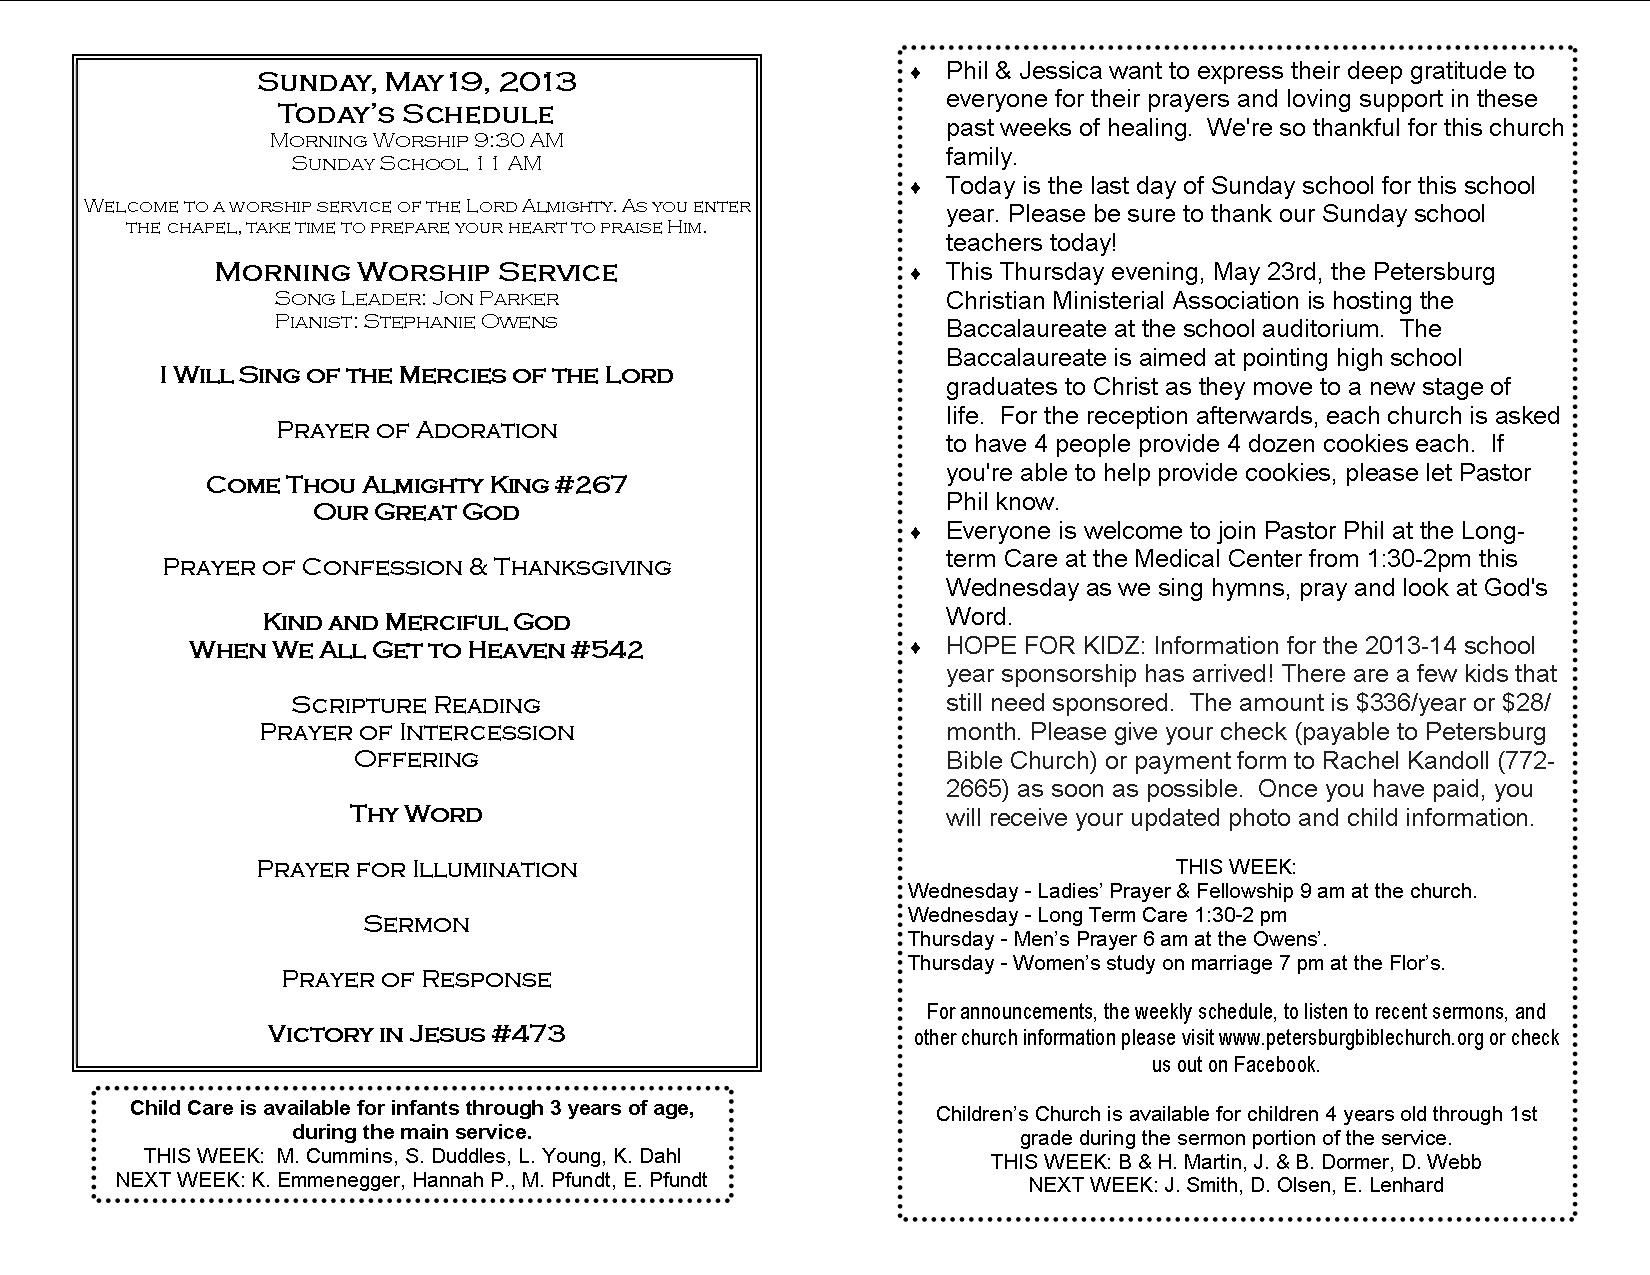 church bulletin fillers and quotes quotesgram by quotesgram church bulletin fillers and quotes quotesgram by quotesgram